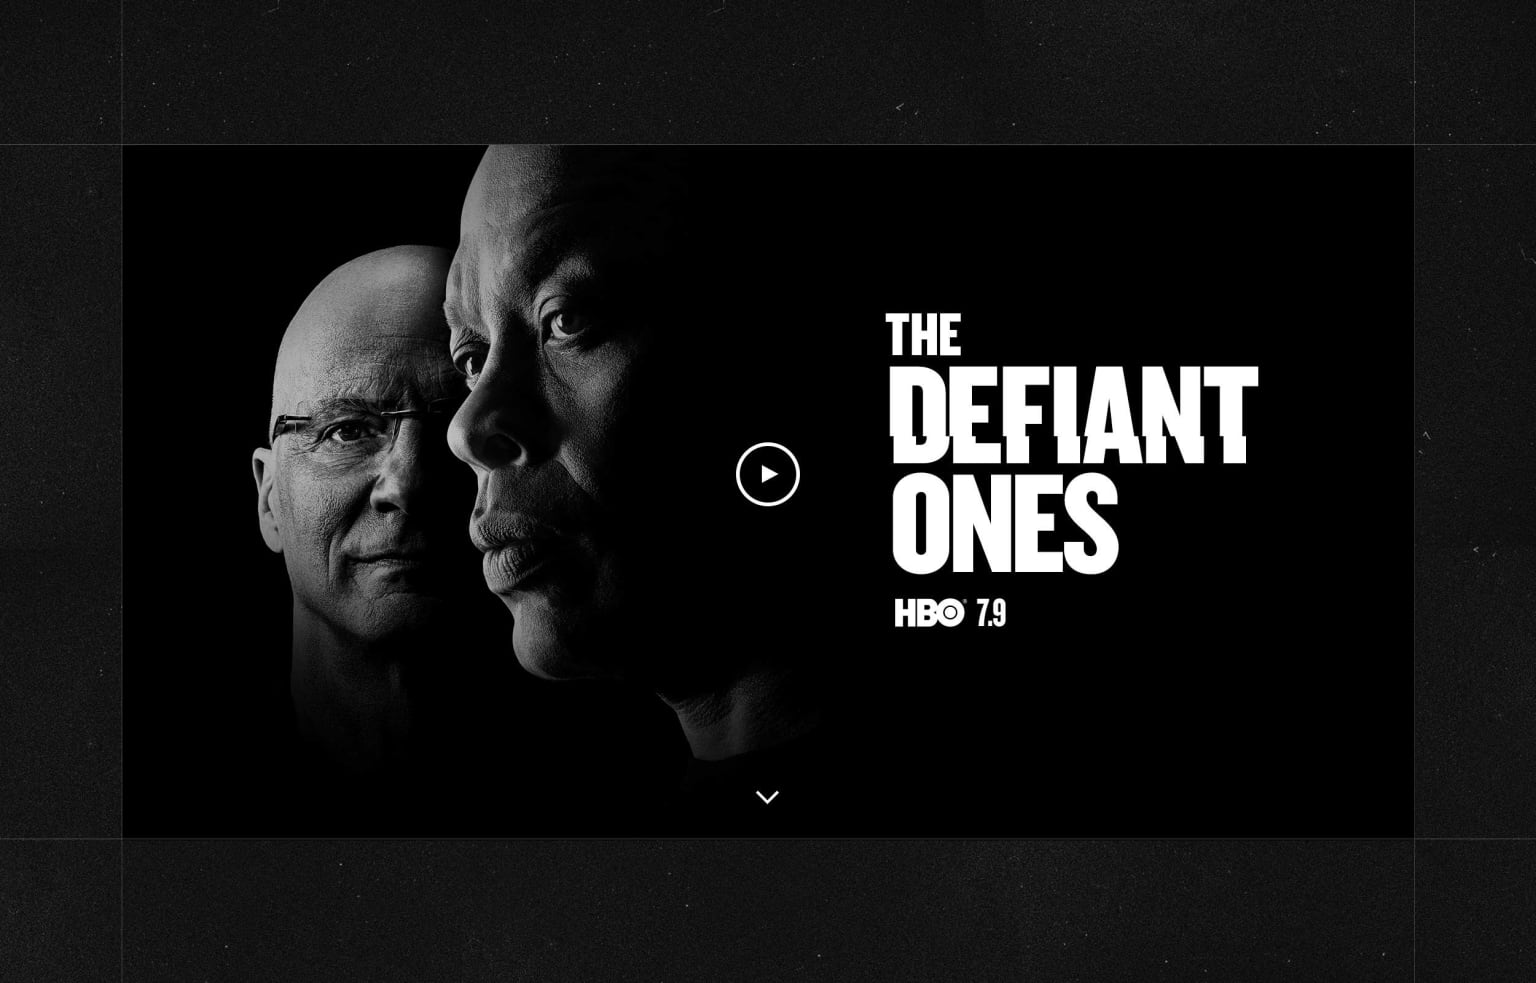 HBO // The Defiant Ones